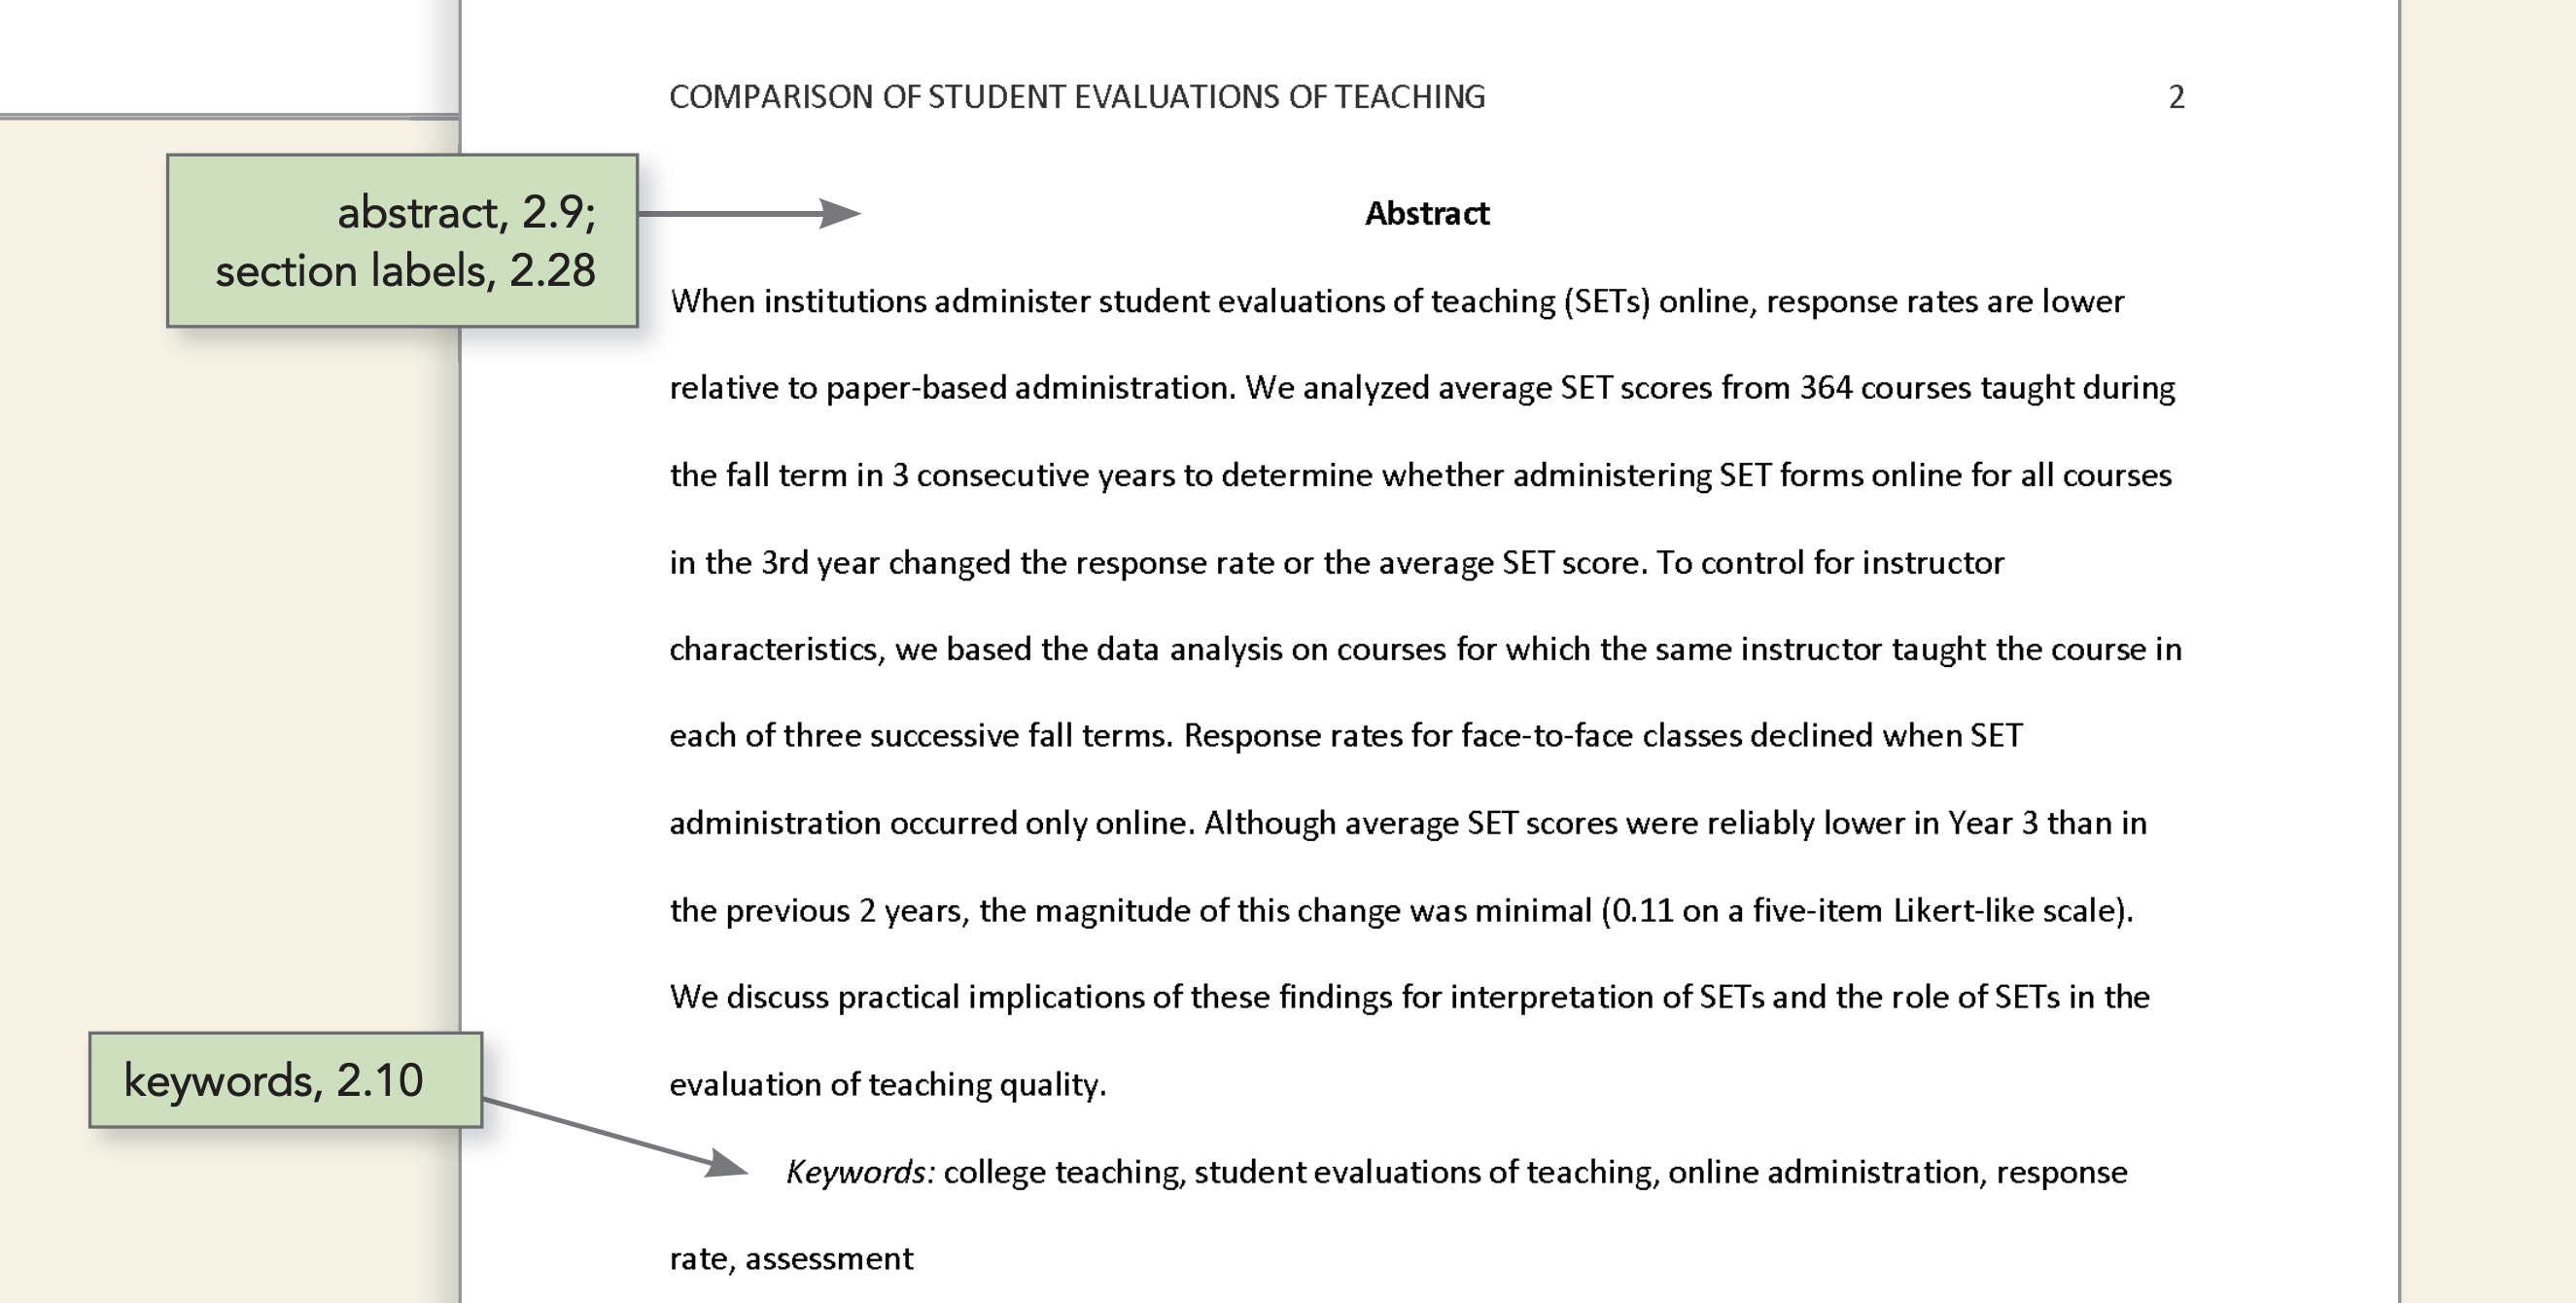 Sample APA Professional Paper Abstract. Click below image to go to APA Abstract Formatting Guide.